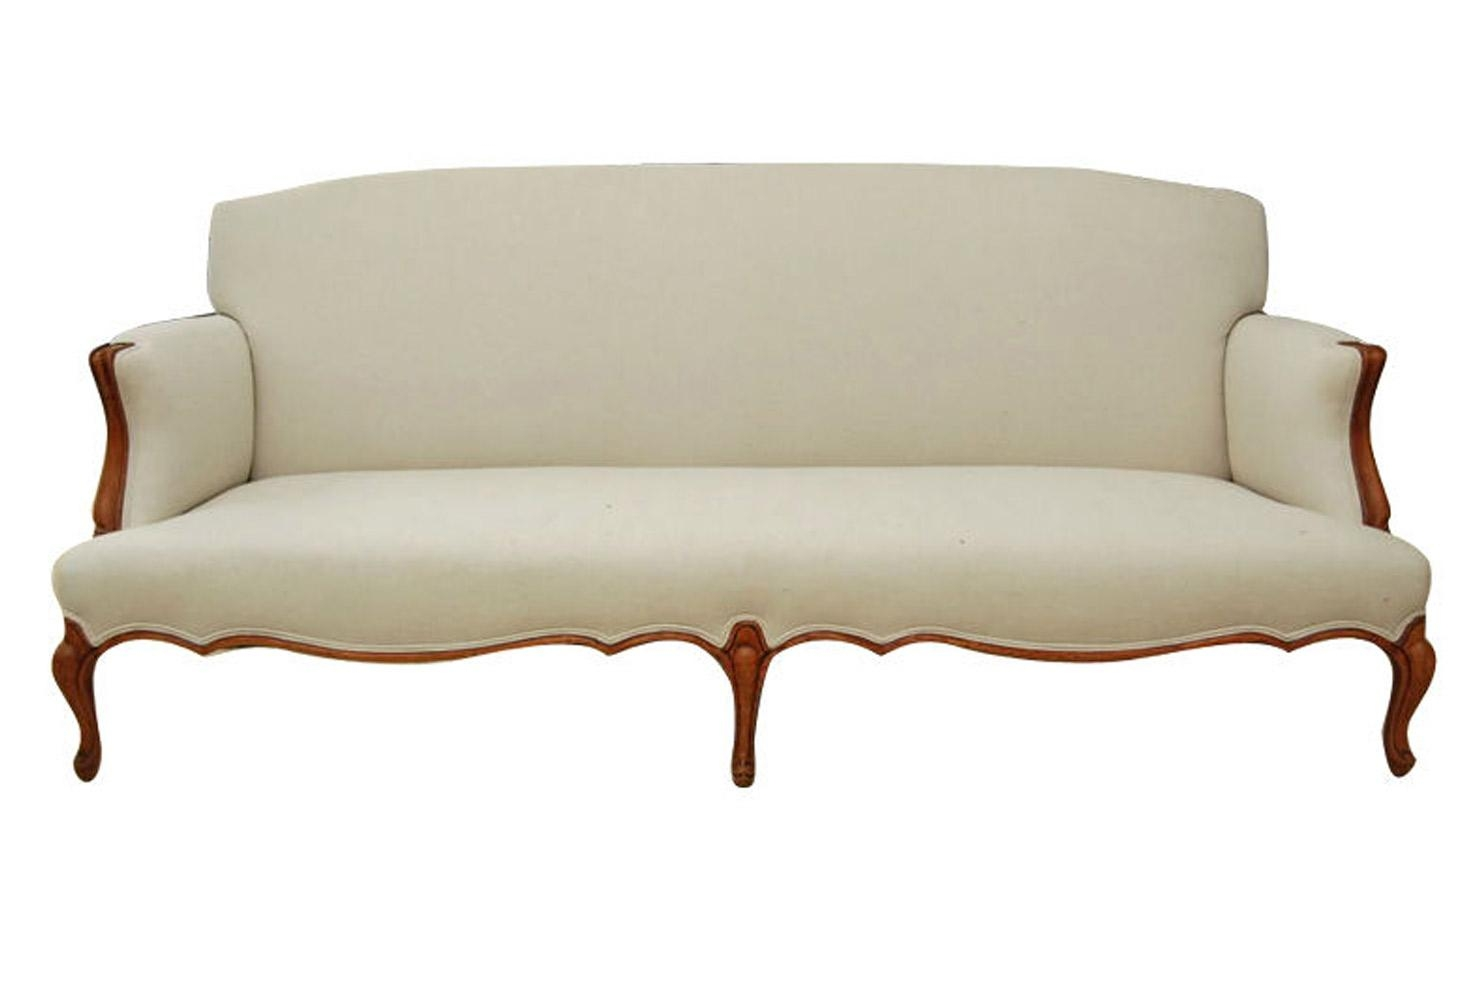 Vintage style sofas vintage knole style sofa in neutral linen at 1stdibs Retro loveseats